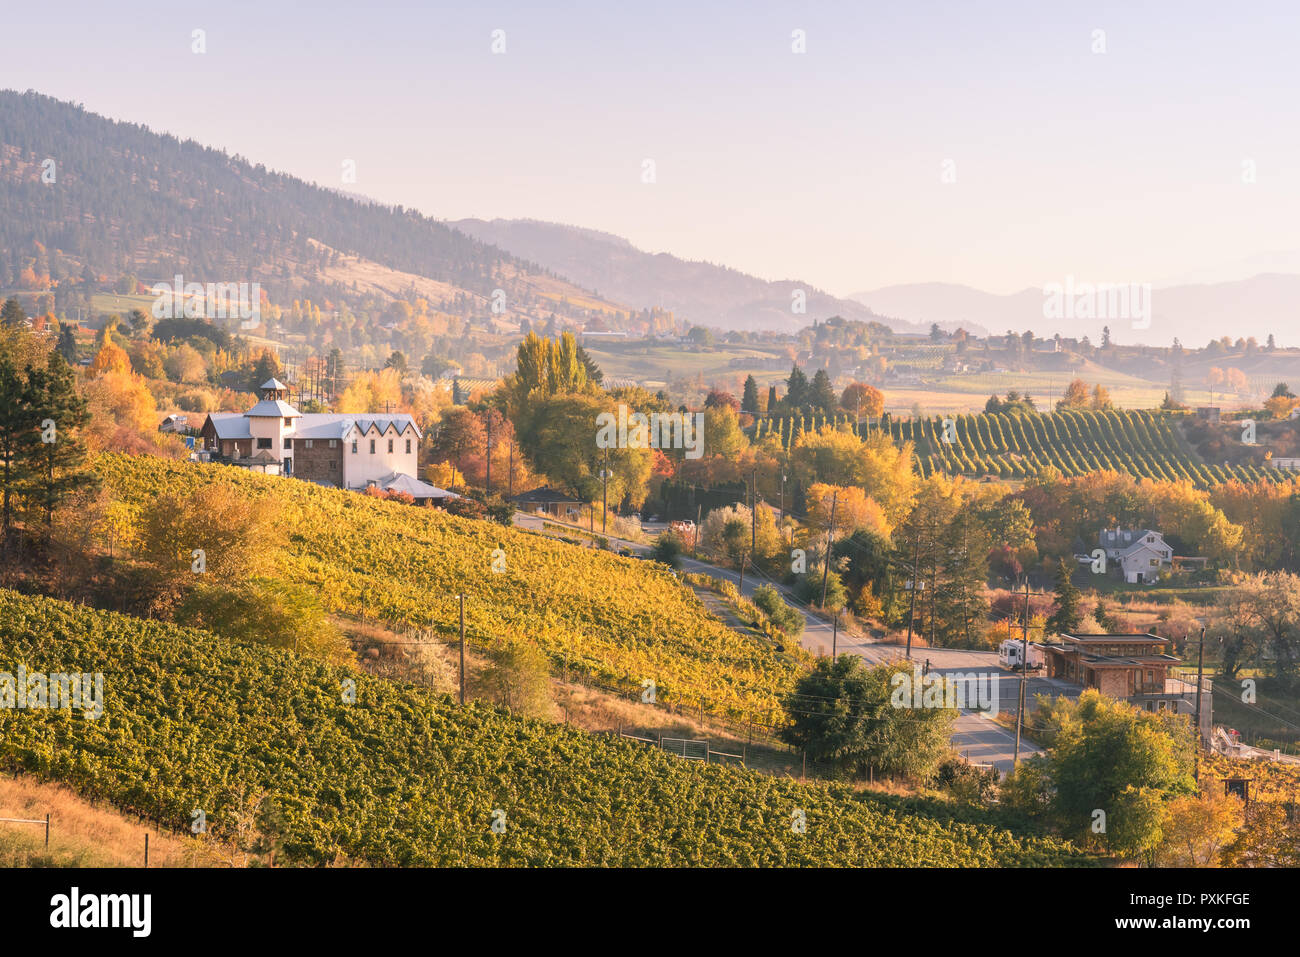 View of vineyards and wineries on the Naramata Bench at sunset in autumn Stock Photo